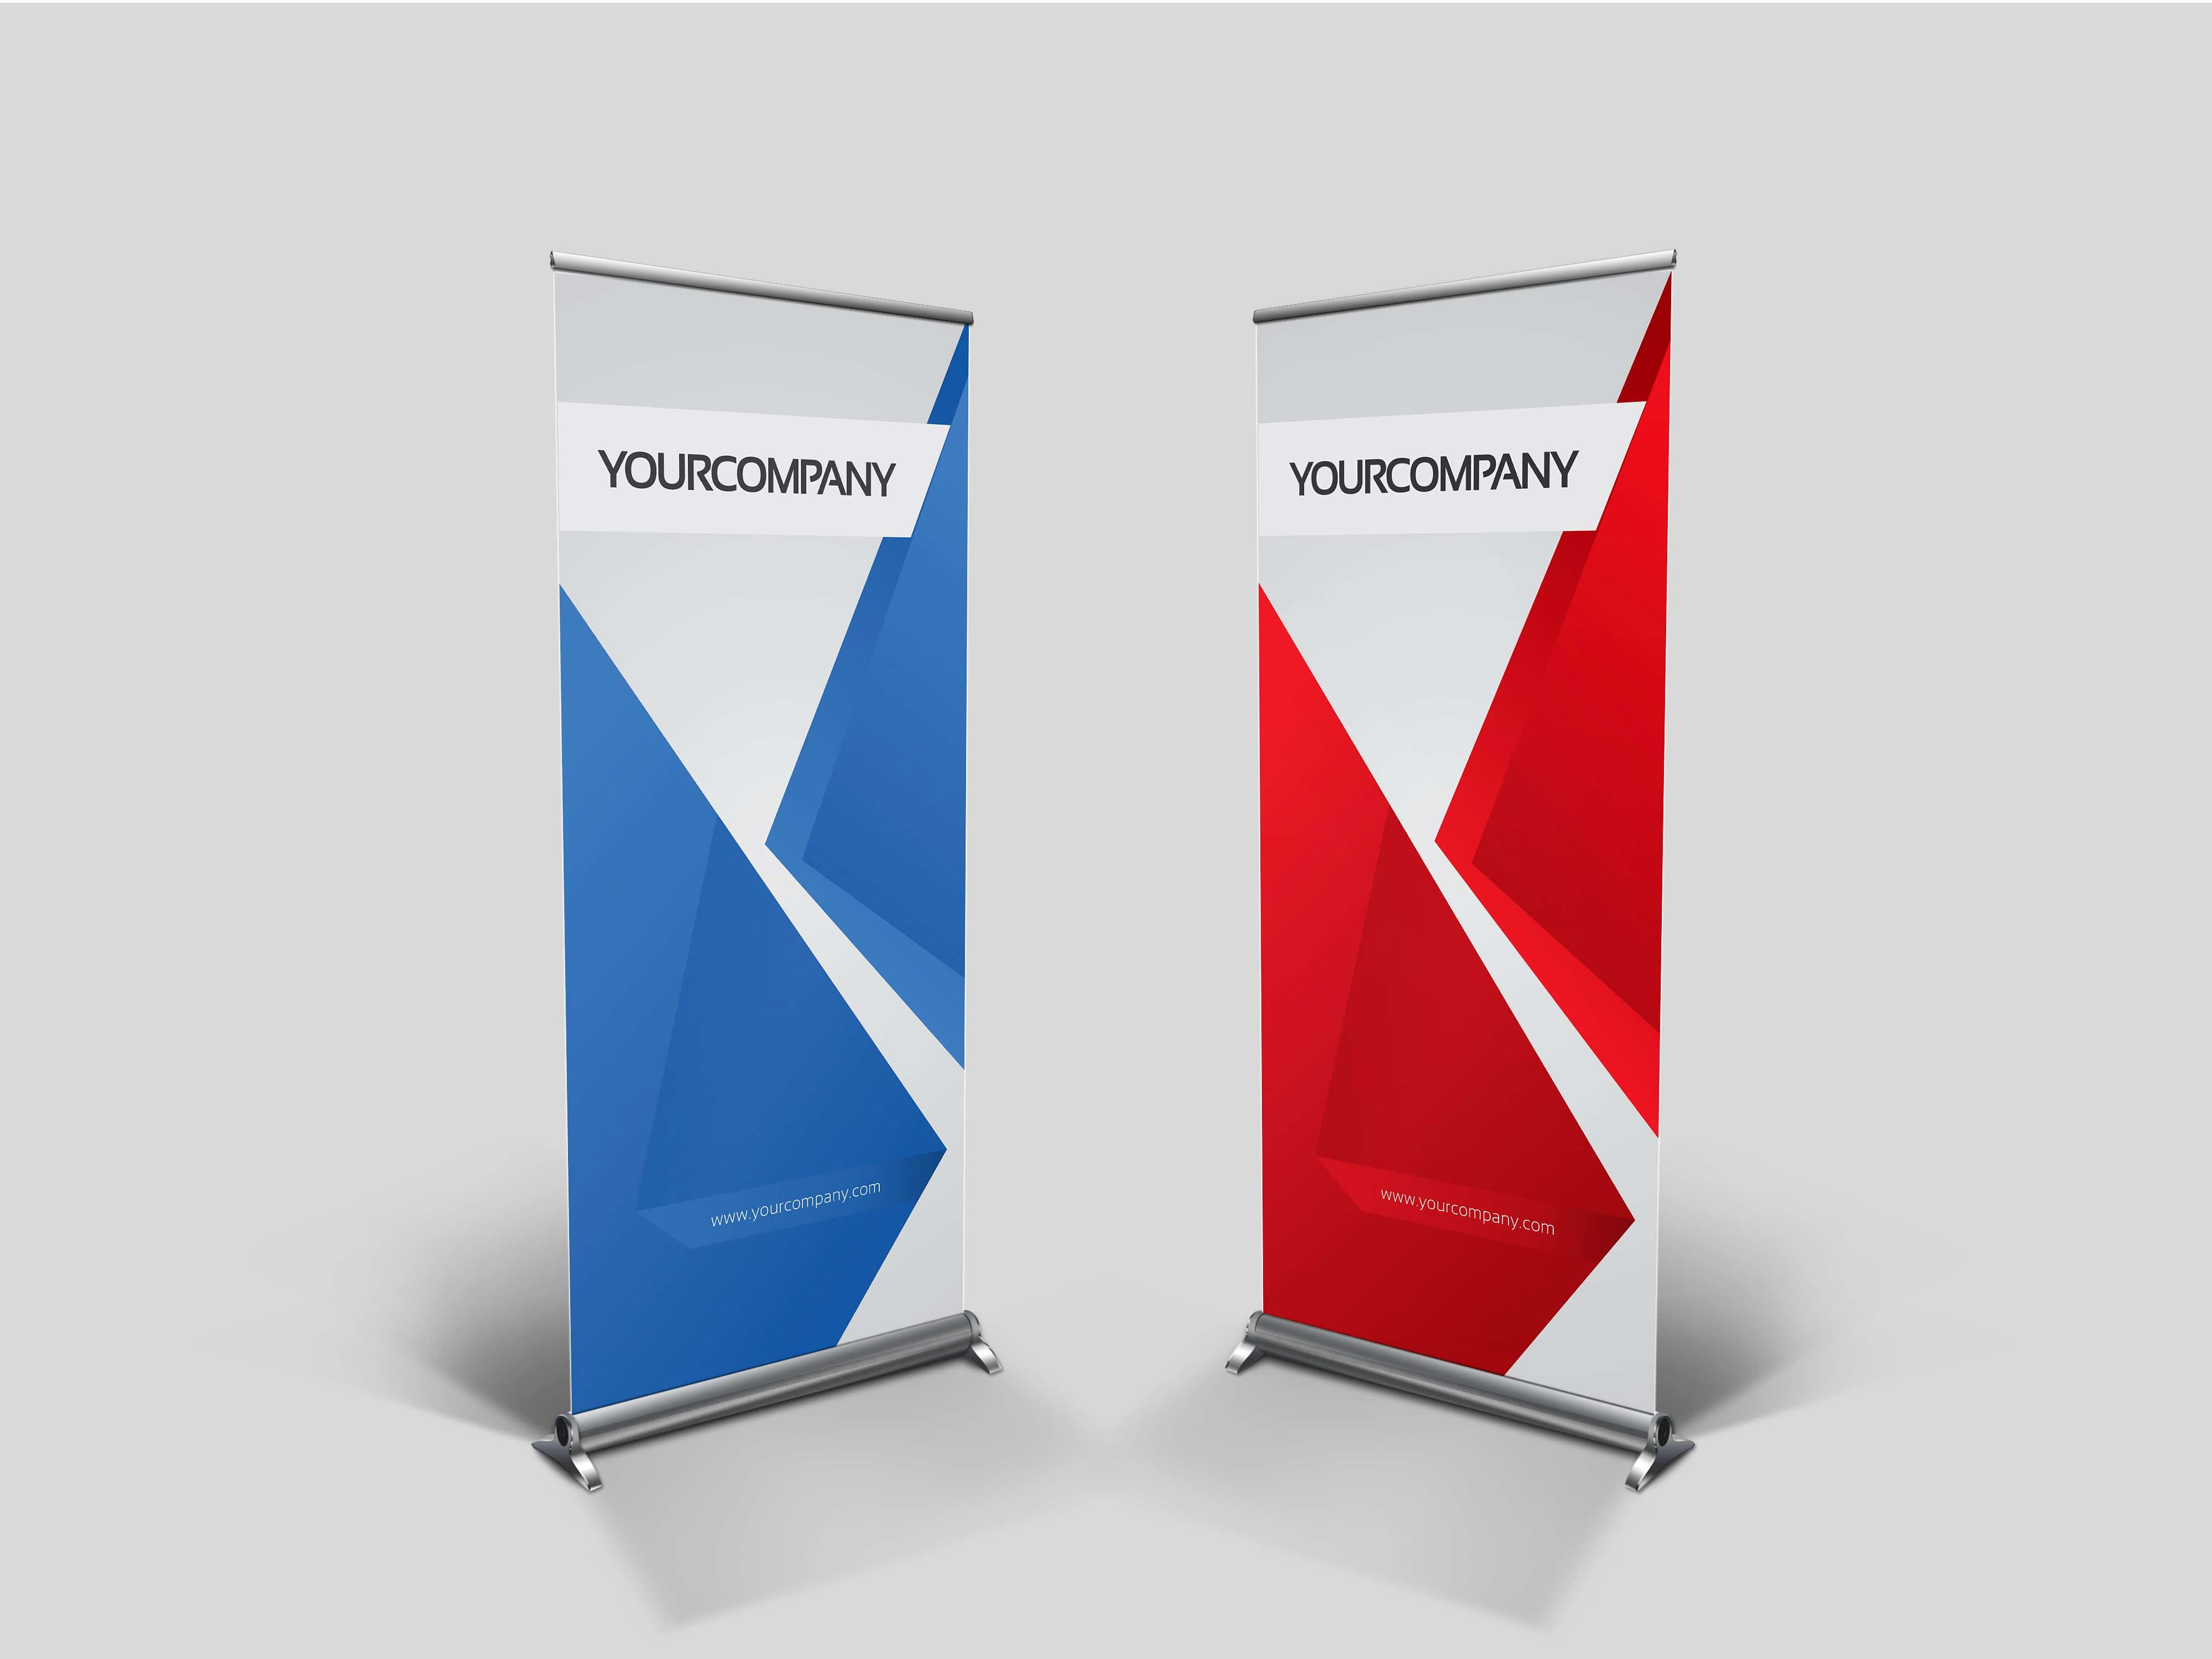 Why Banners Are Recommended For Trade Shows Or Events